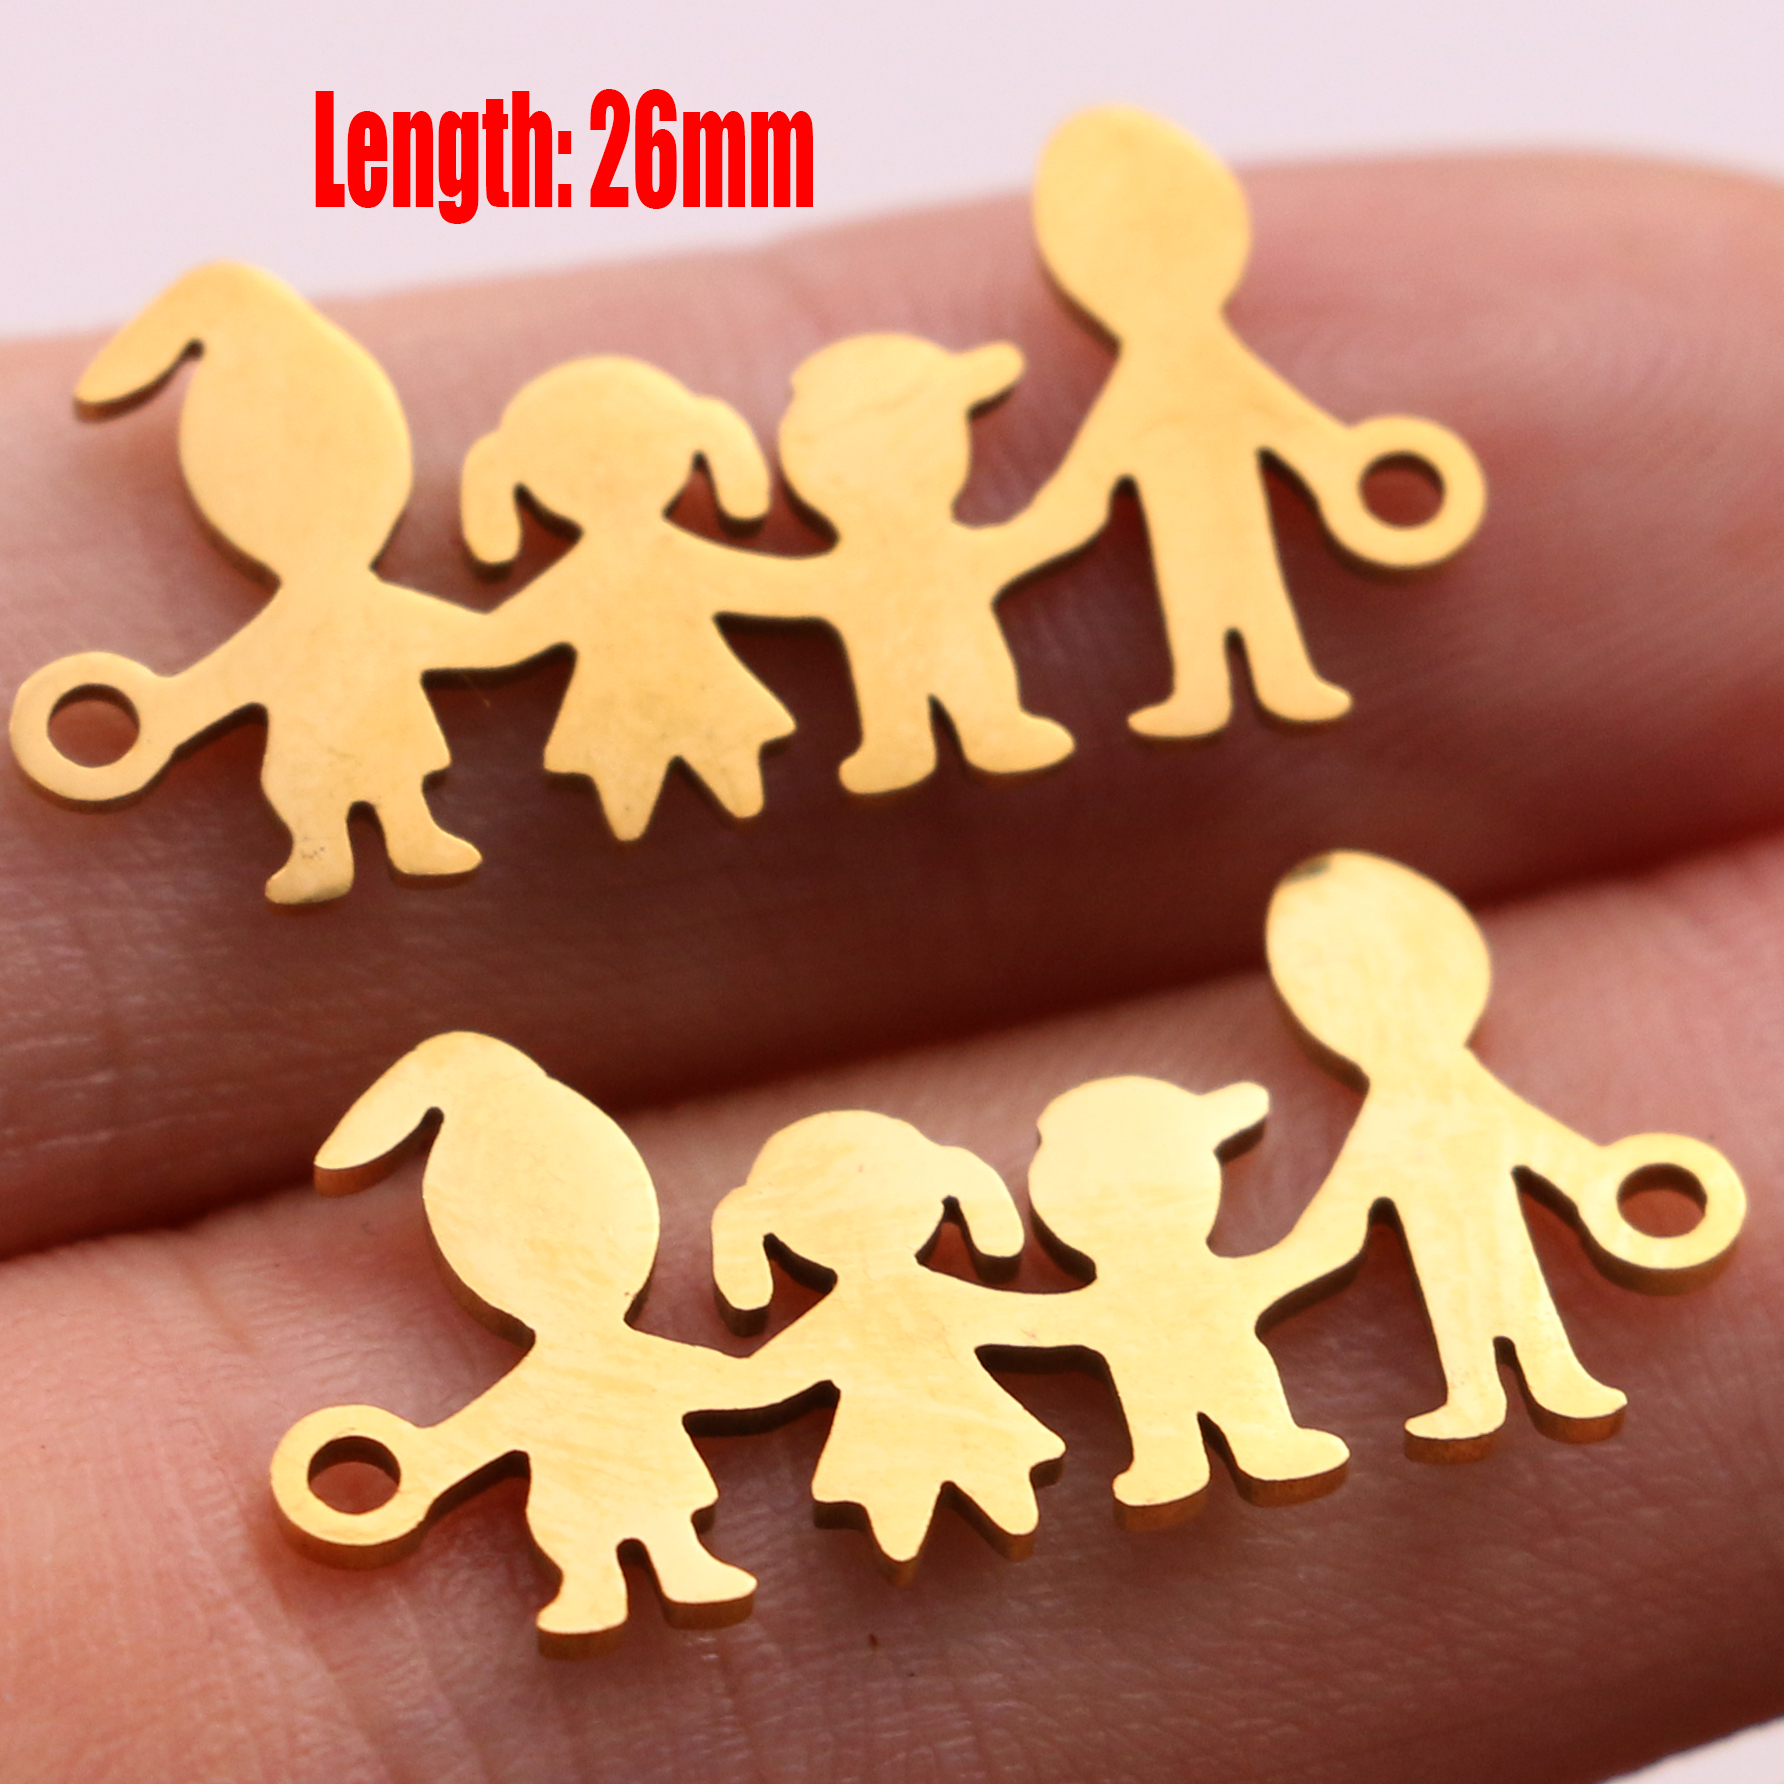 5pcs Family Chain Stainless Steel Pendant Necklace Parents and Children Necklaces Gold/steel Jewelry Gift for Mom Dad New Twice - Цвет: Gold 31